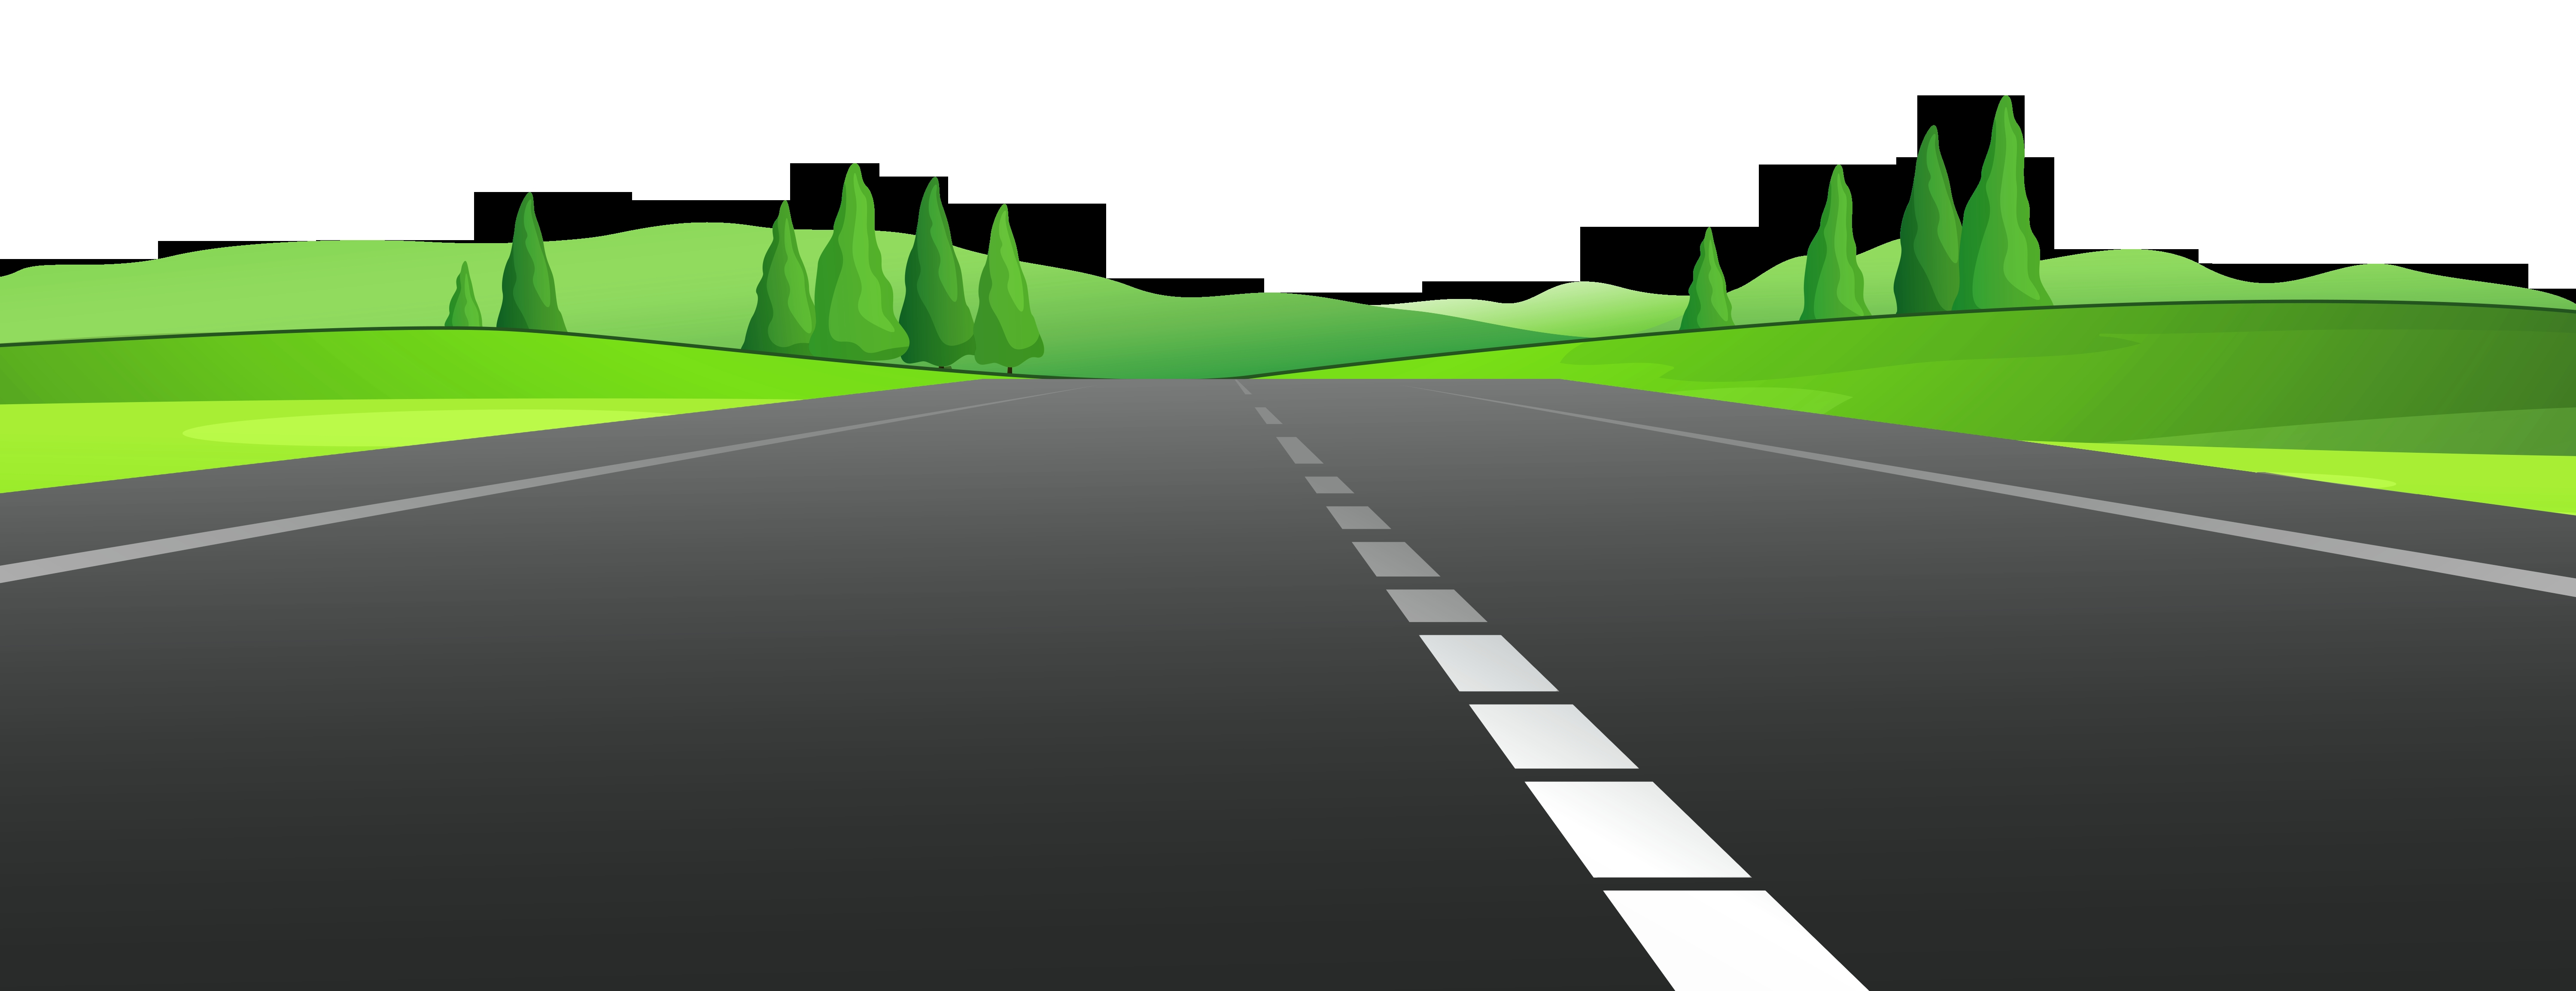 Unique highway gallery digital. Background clipart road